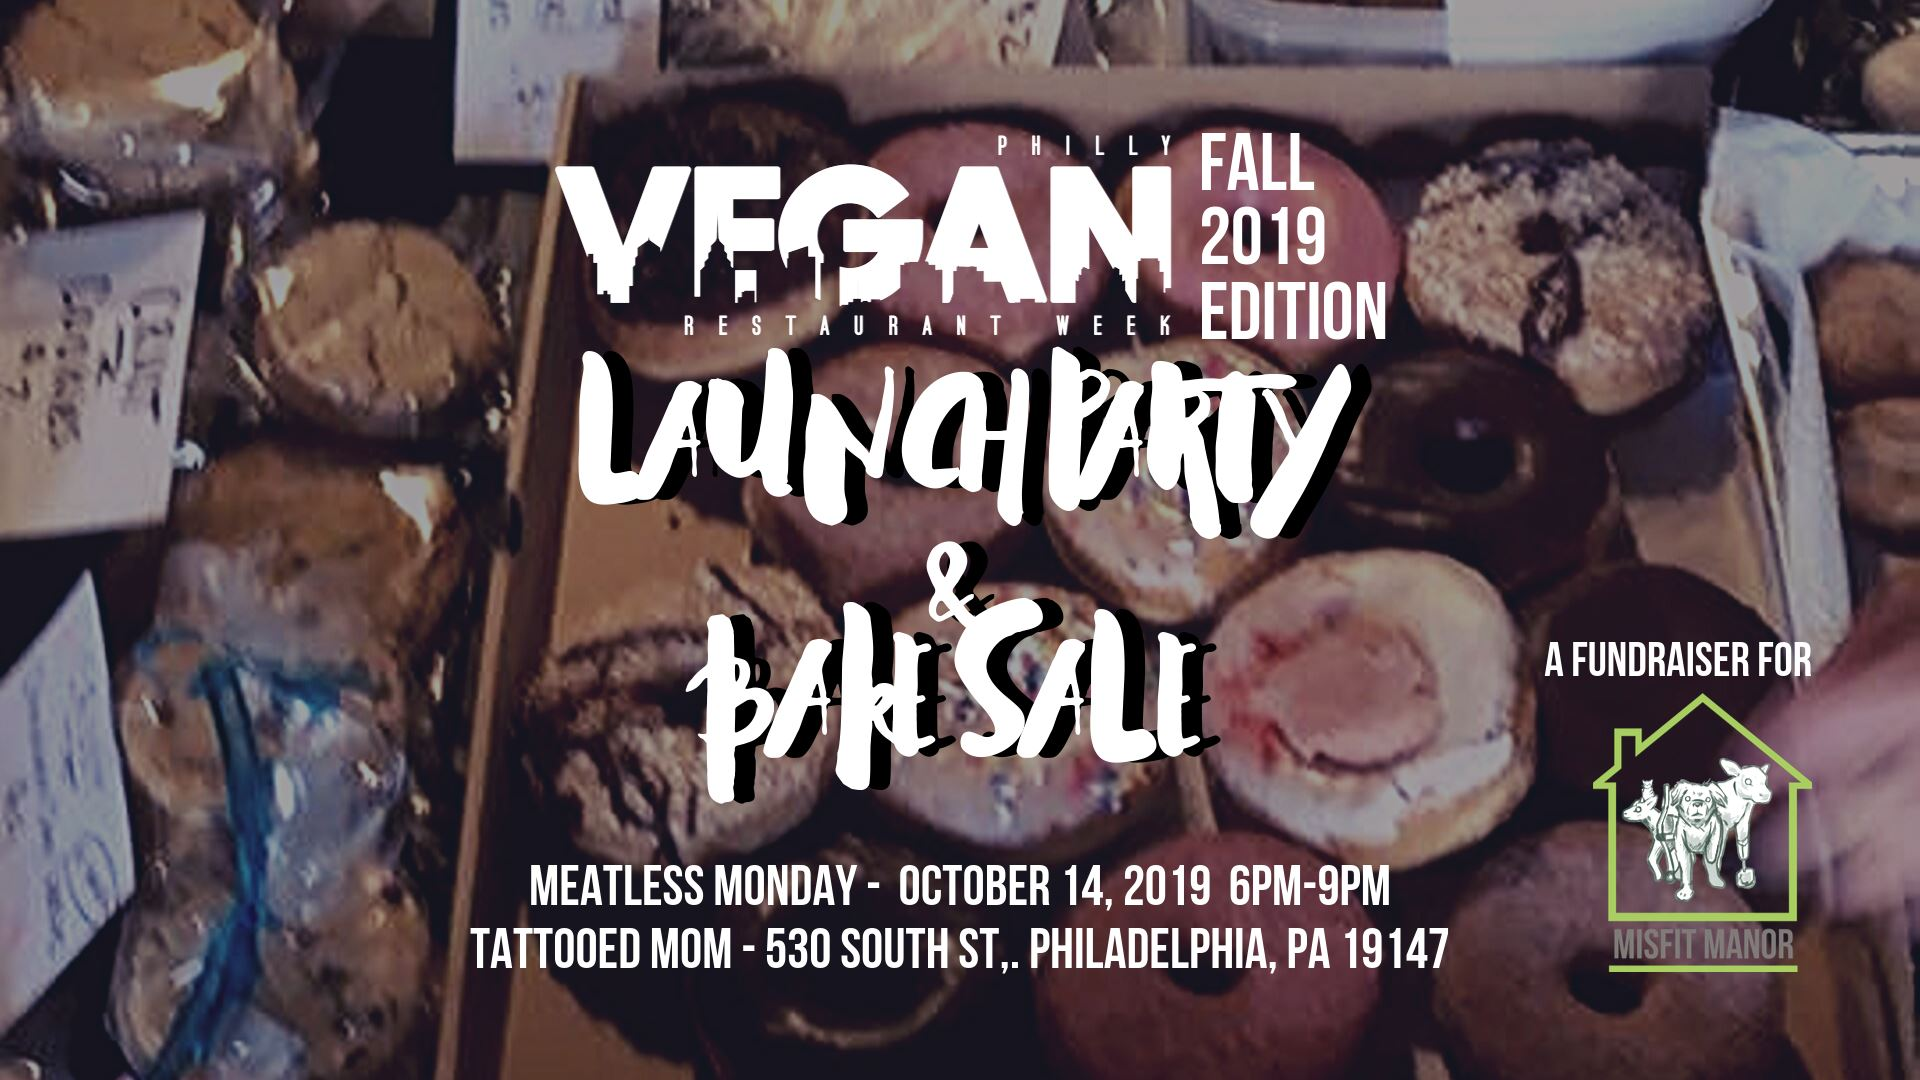 Philly Vegan Restaurant Week Fall 2019 Launch Party Bake